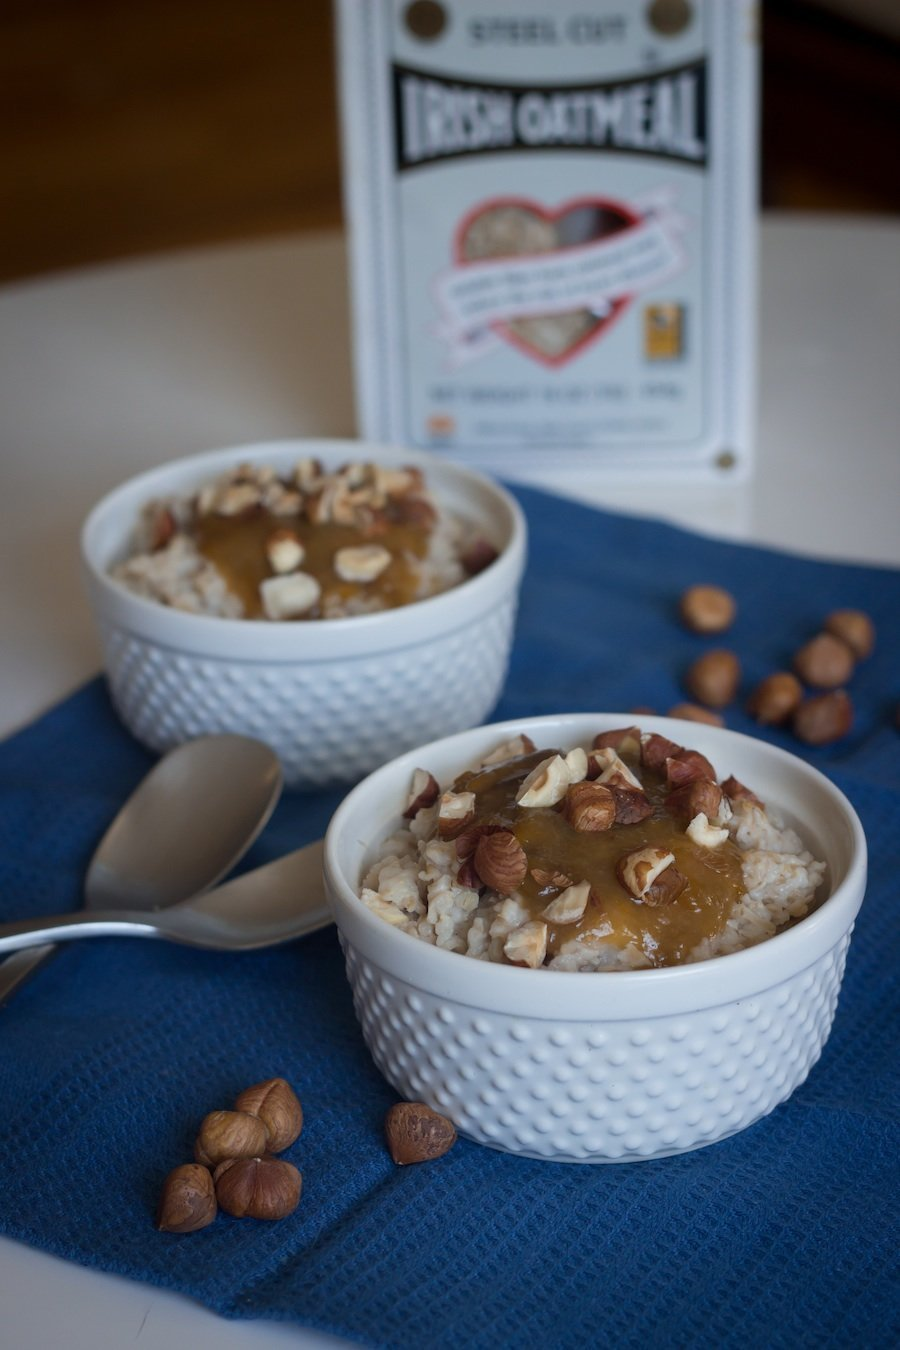 Oatmeal with Stewed Plums and Hazelnuts